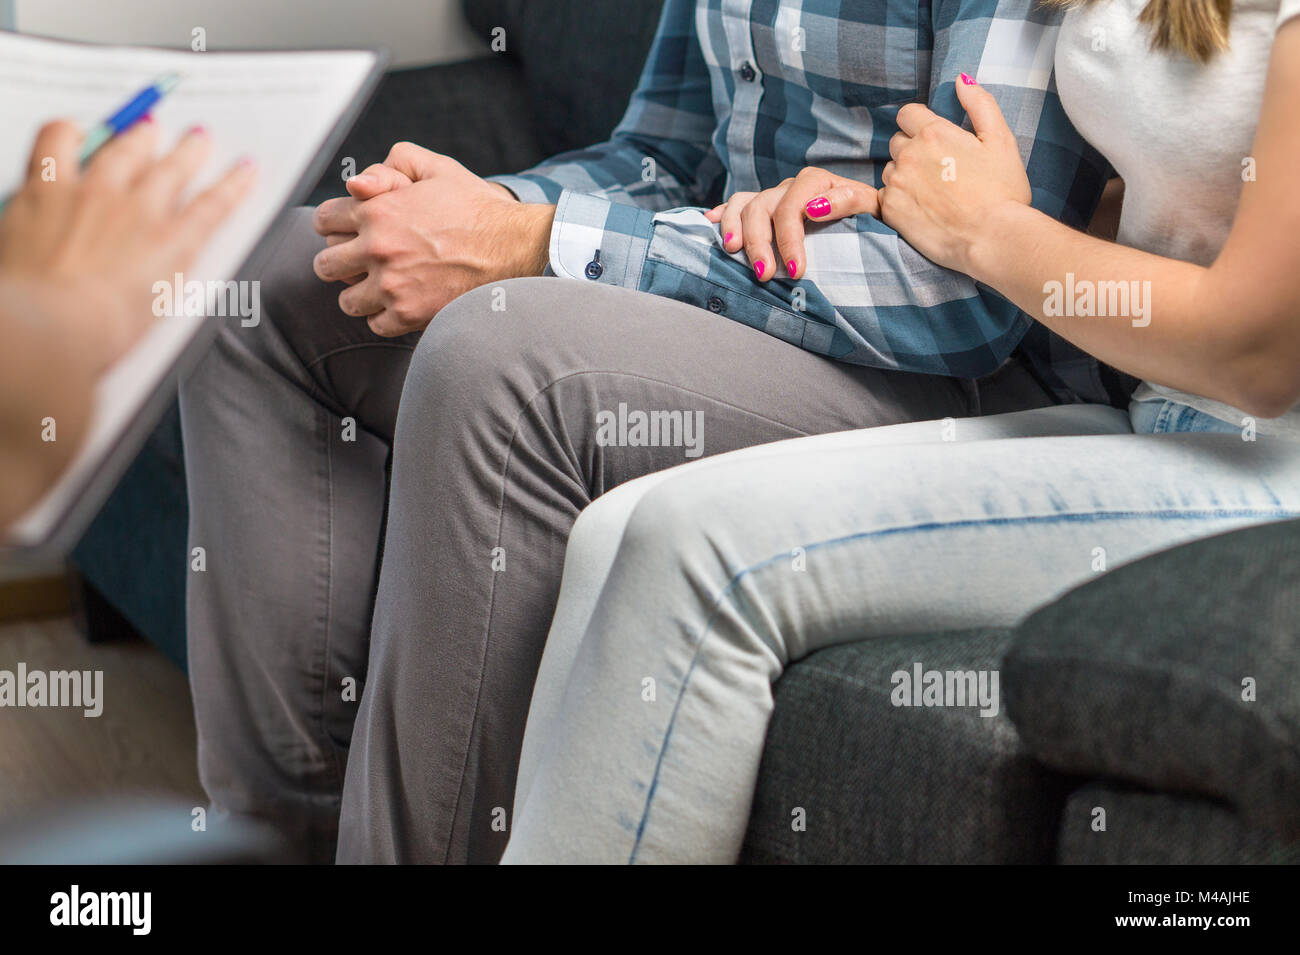 Couples therapy or marriage counseling. Woman hugging man's hand on couch during a psychotherapy session. Psychologist, - Stock Image